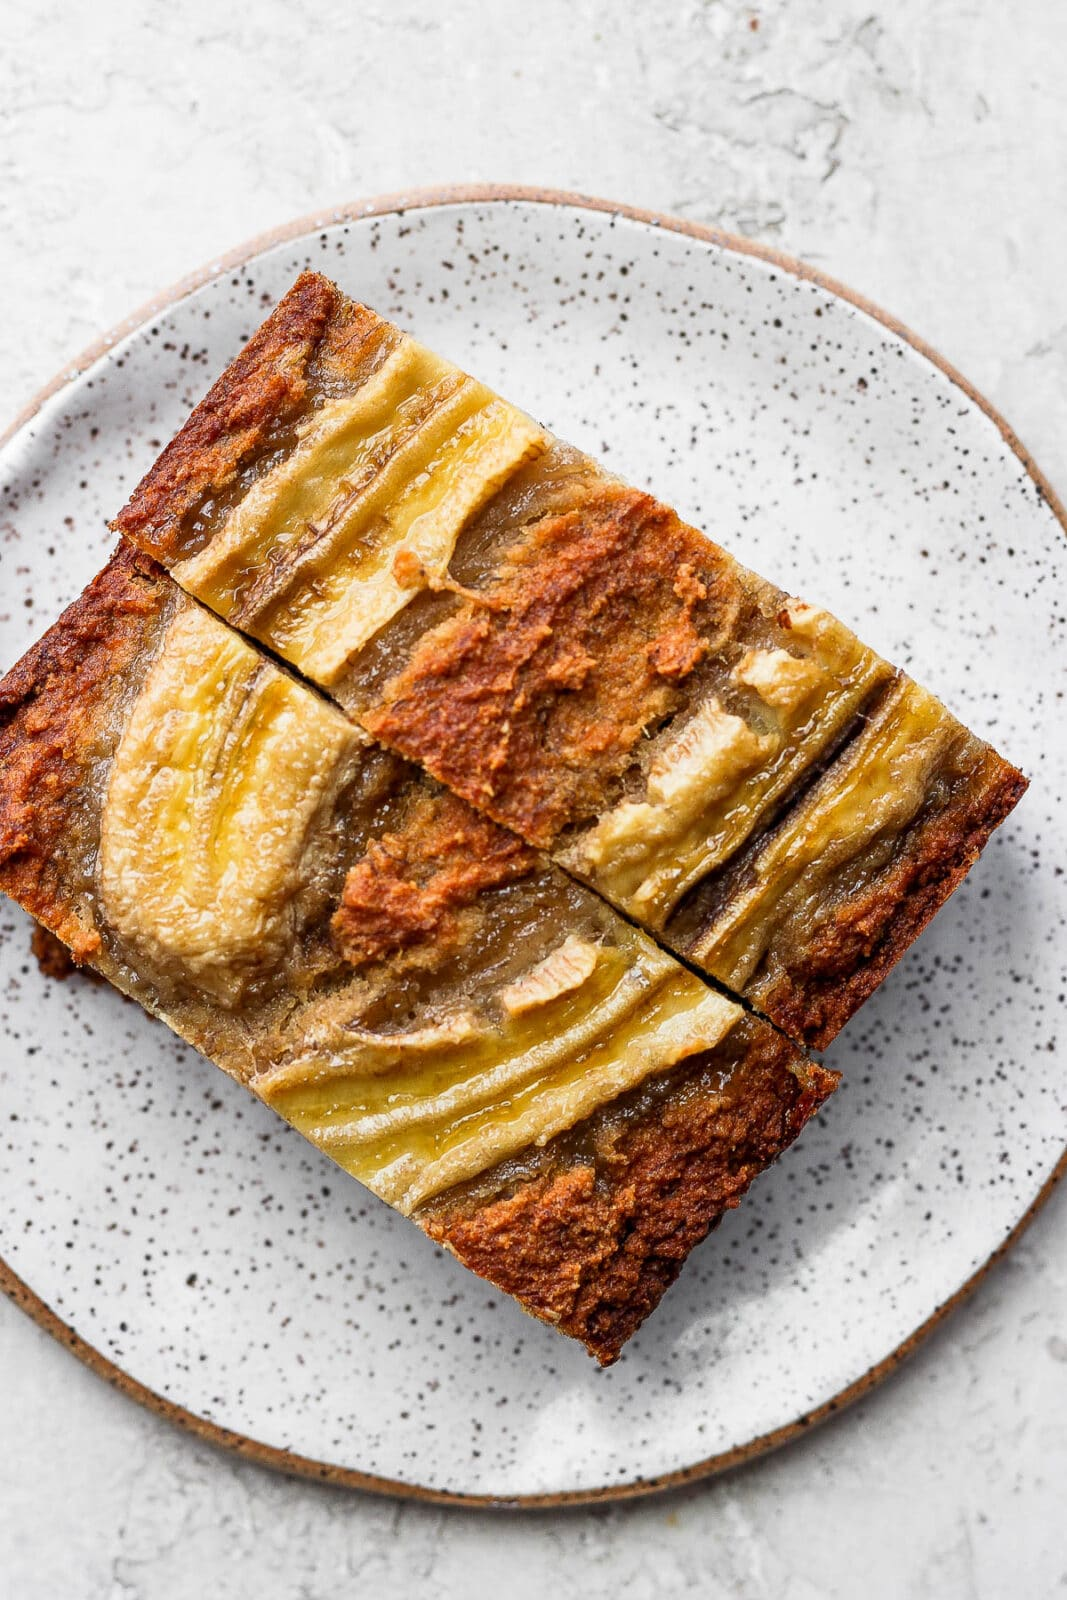 A plate with 2 slices of paleo banana bread.